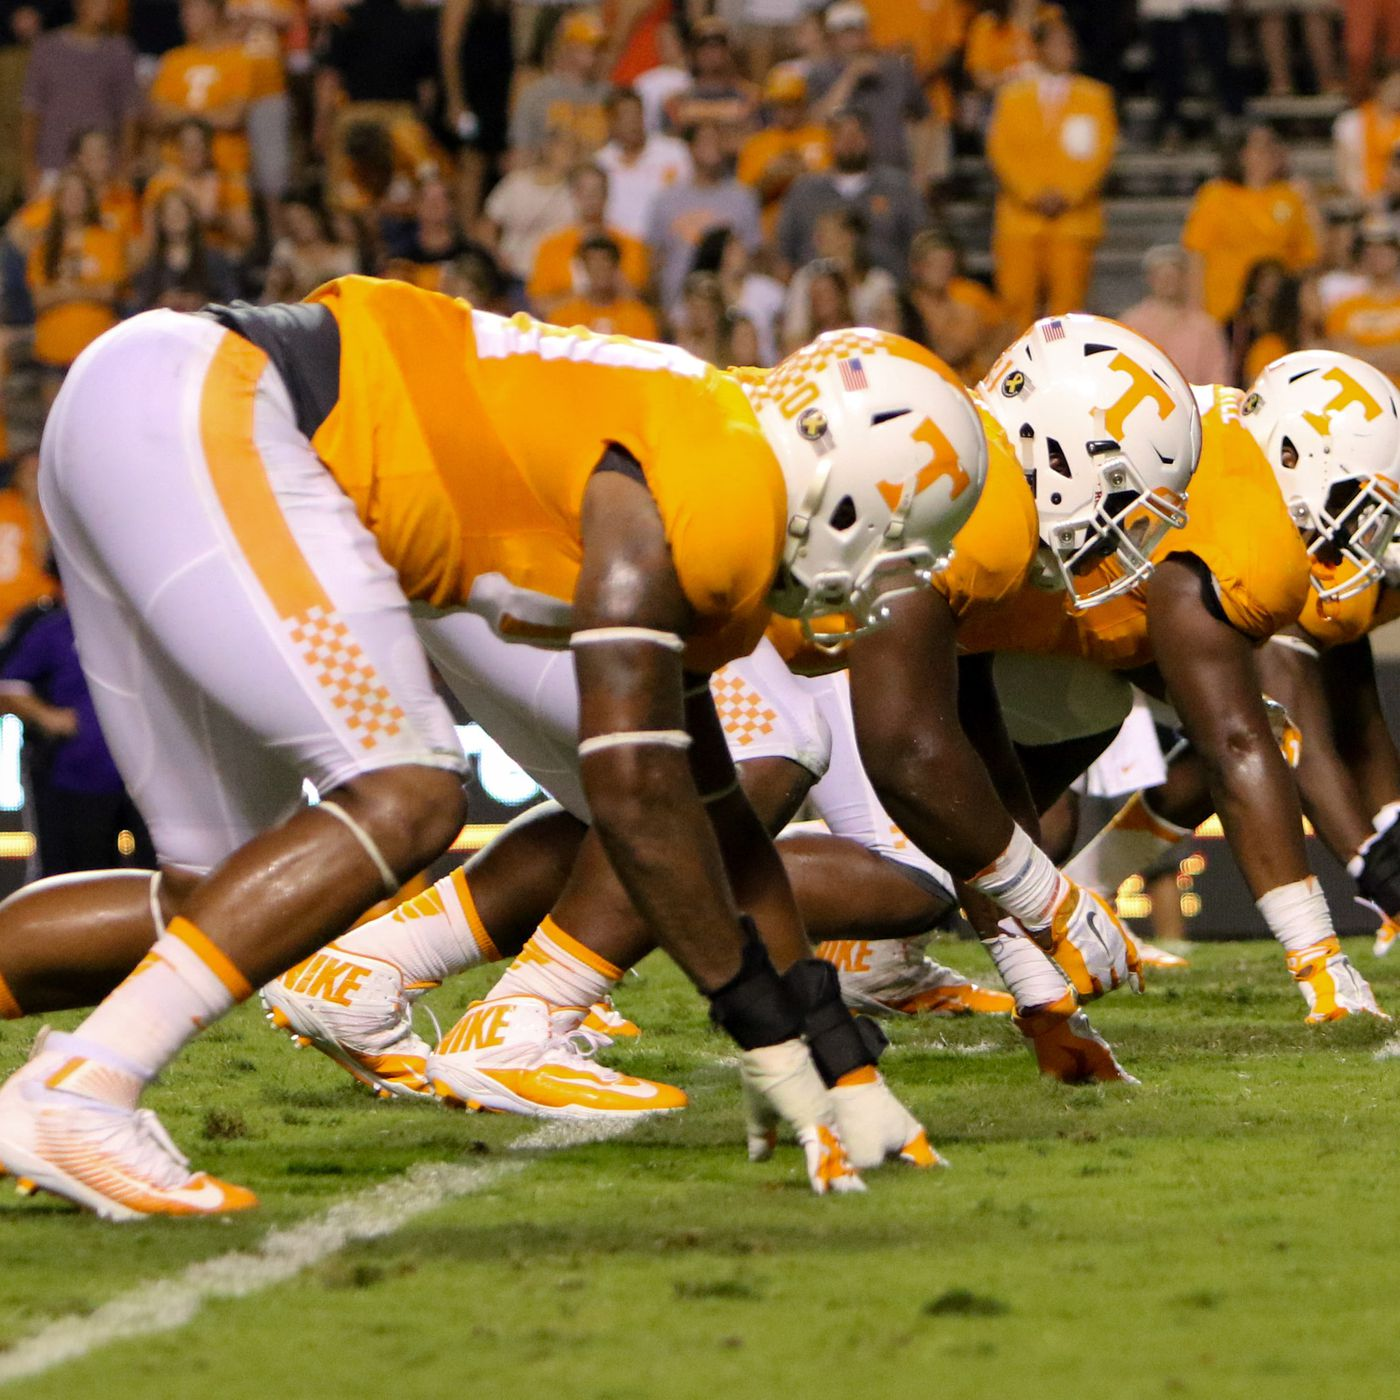 College Football Gambling Tcu Upset Alert Tennessee And Week 4 S 15 Other Best Bets Sbnation Com